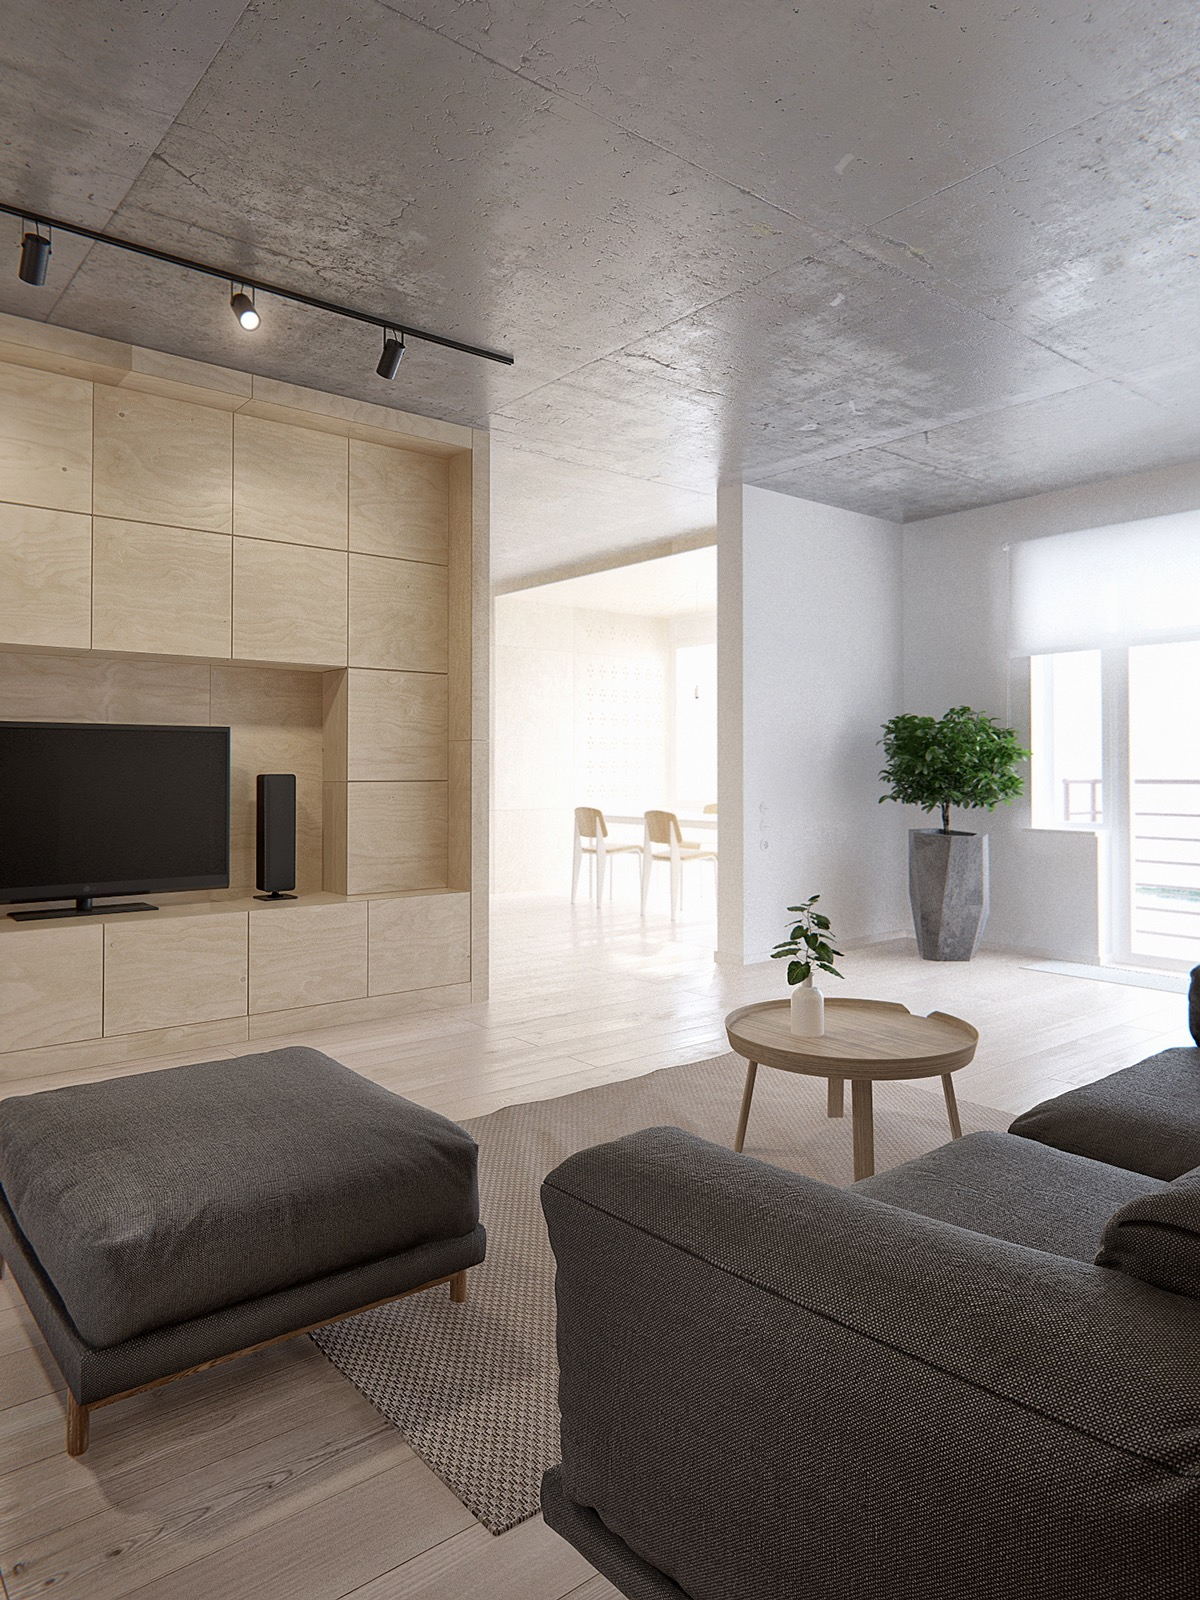 Oversized Ottoman - Minimalist apartment for a family of four